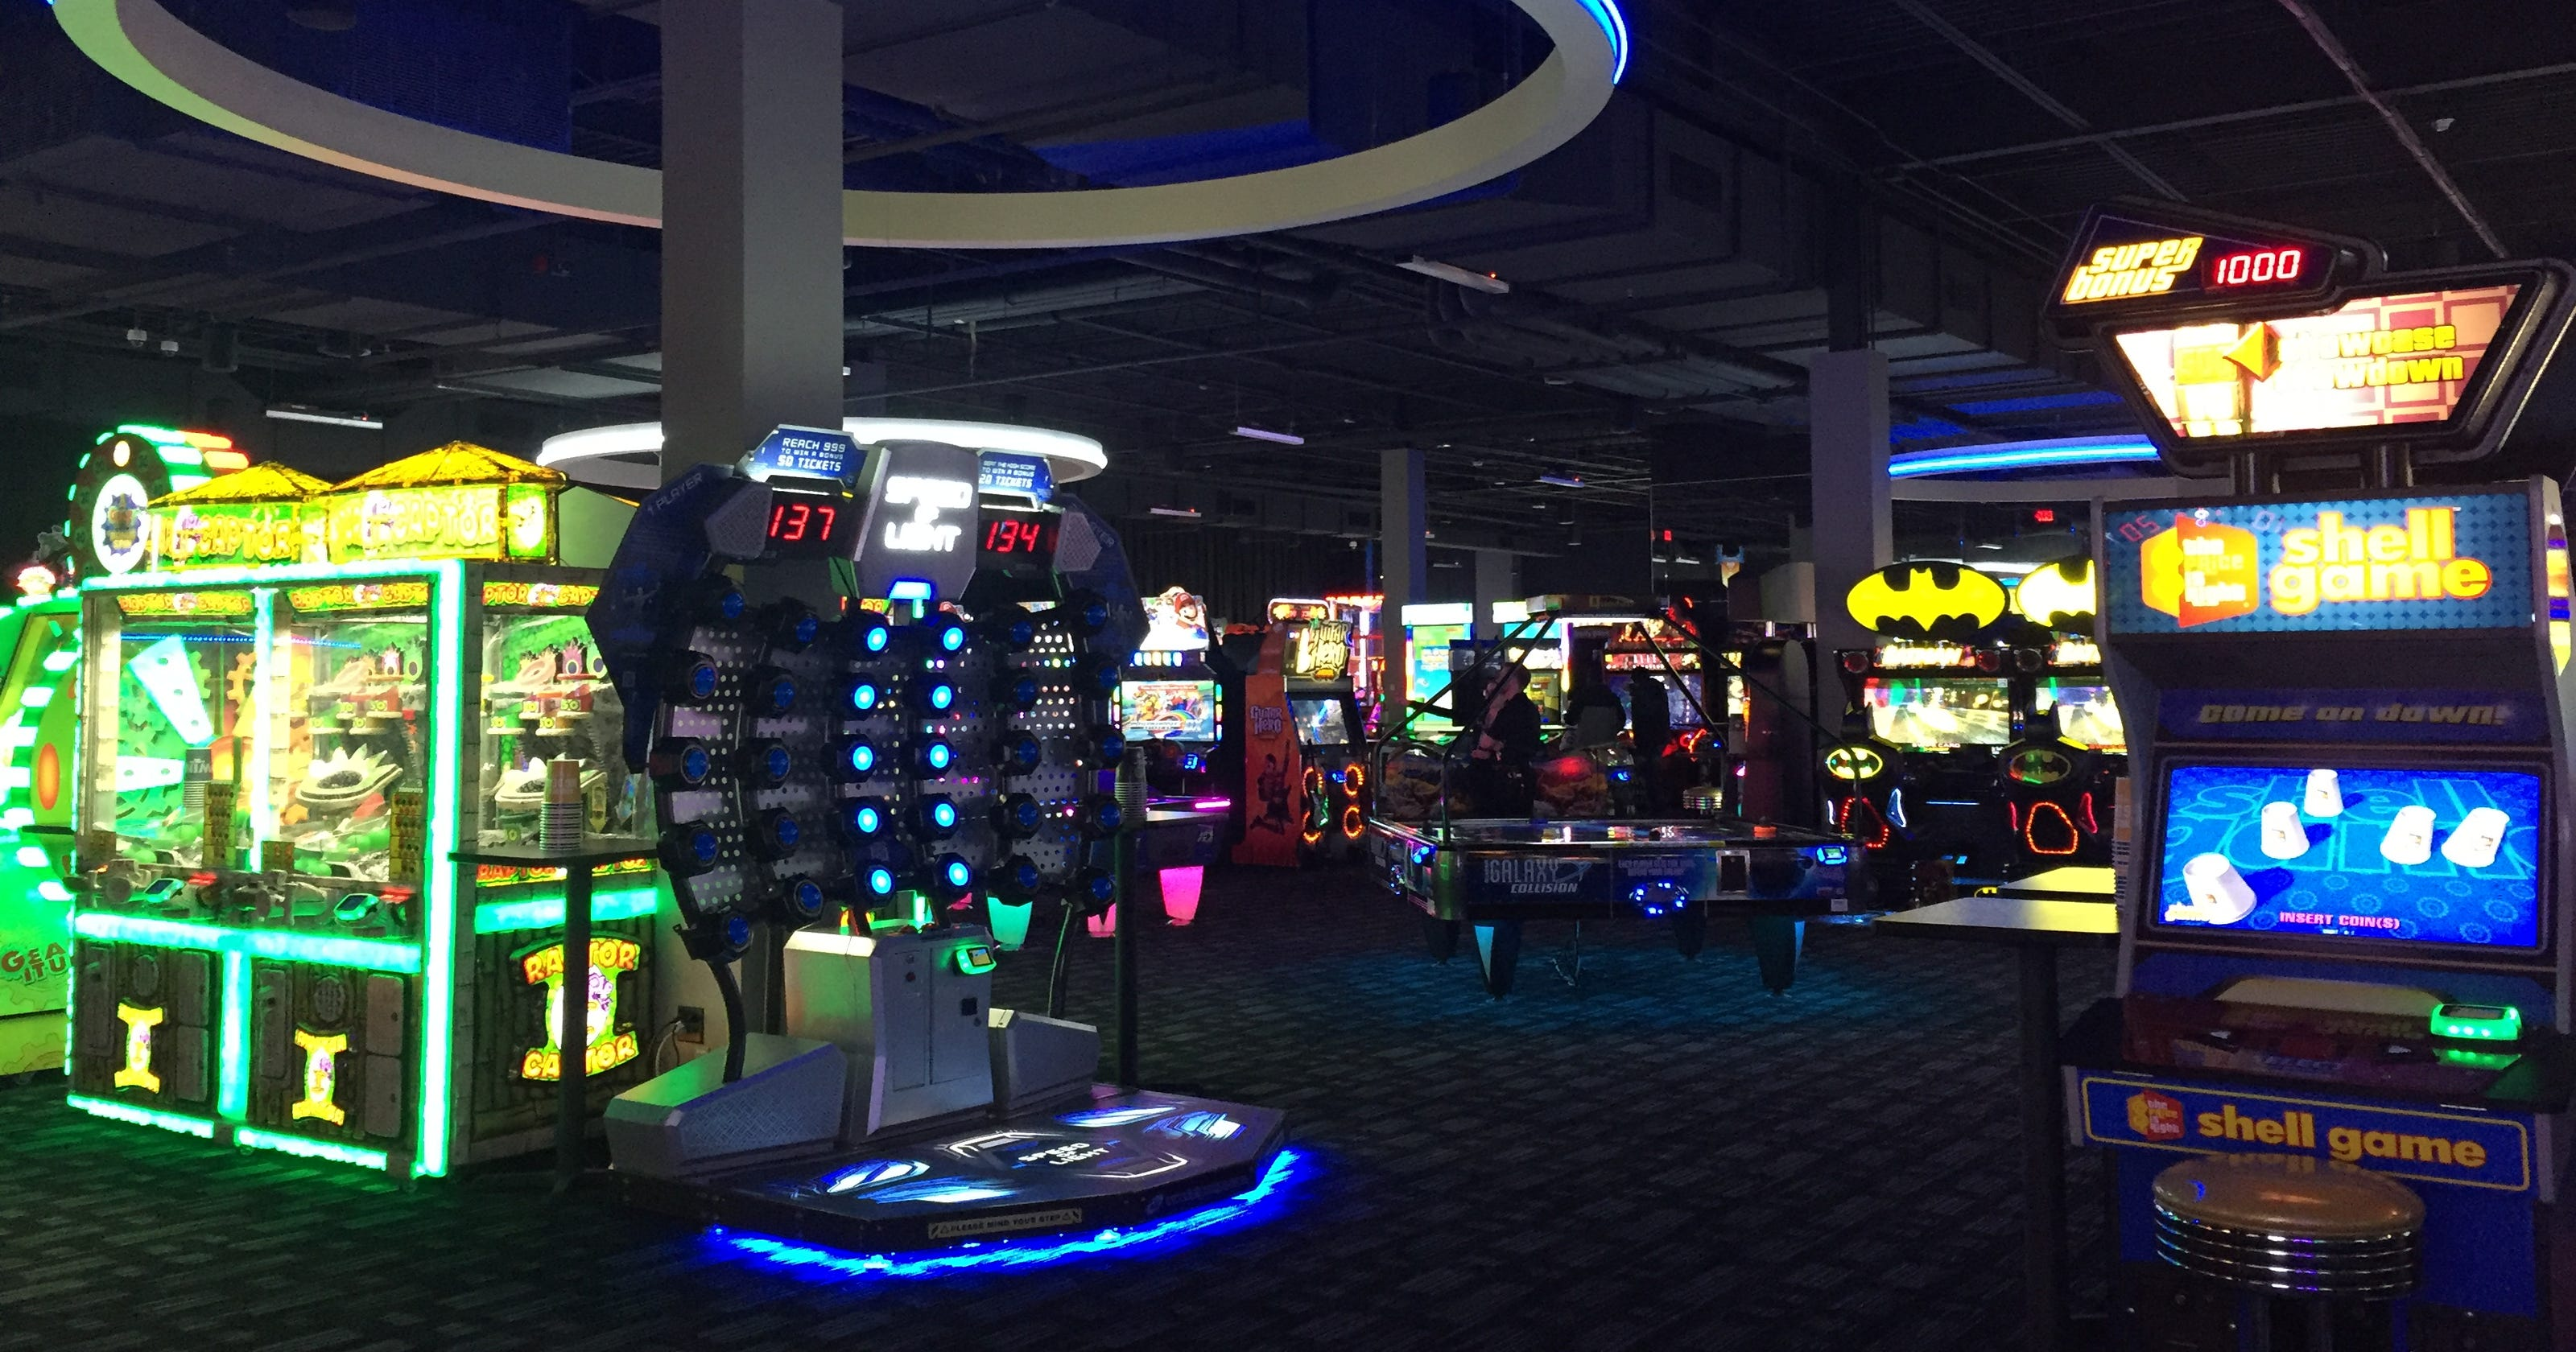 Dave & Buster's opens at Marketplace Mall